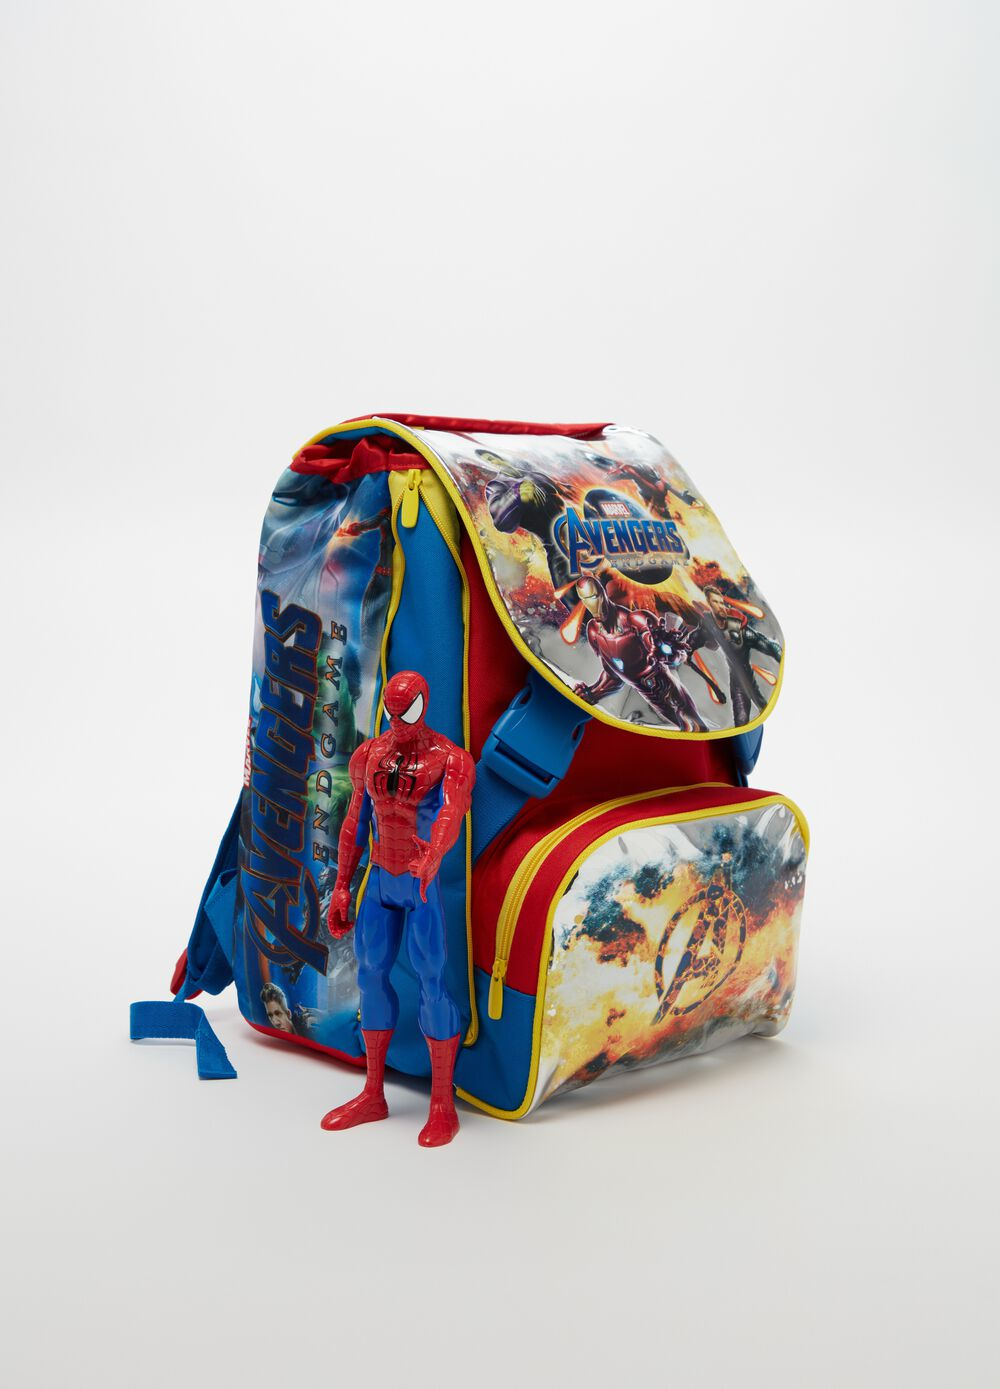 Avengers Endgame backpack